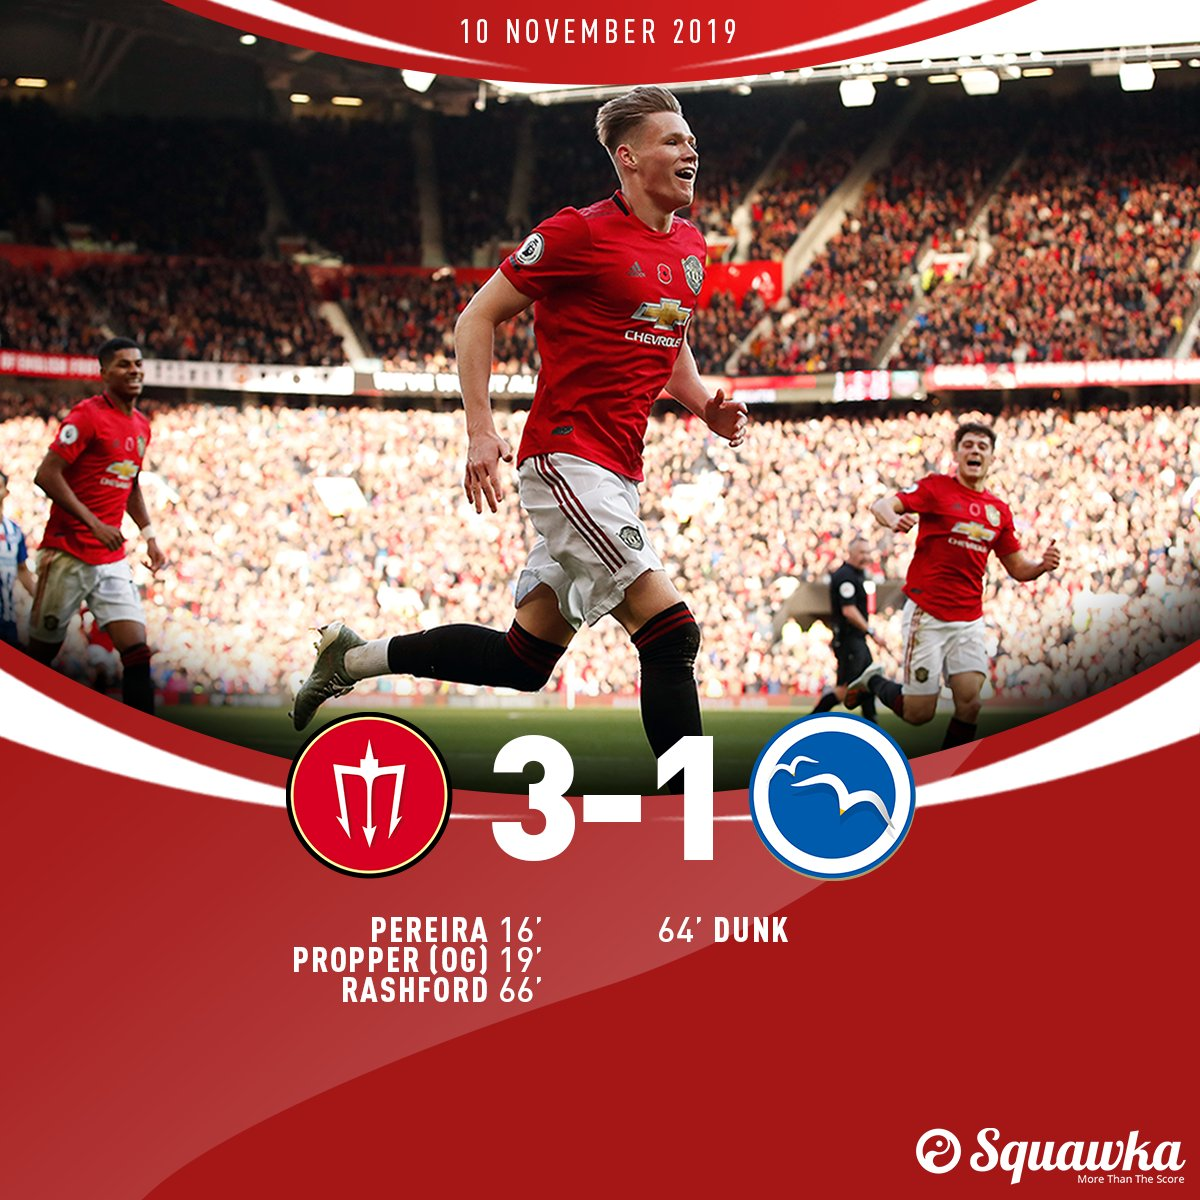 Man Utd 3-1 Brighton: ⚽️ Pereira ⚽️ Propper (OG) ⚽️ Dunk ⚽️ Rashford Man Utd up to seventh in the table after getting back to winning ways in the league.